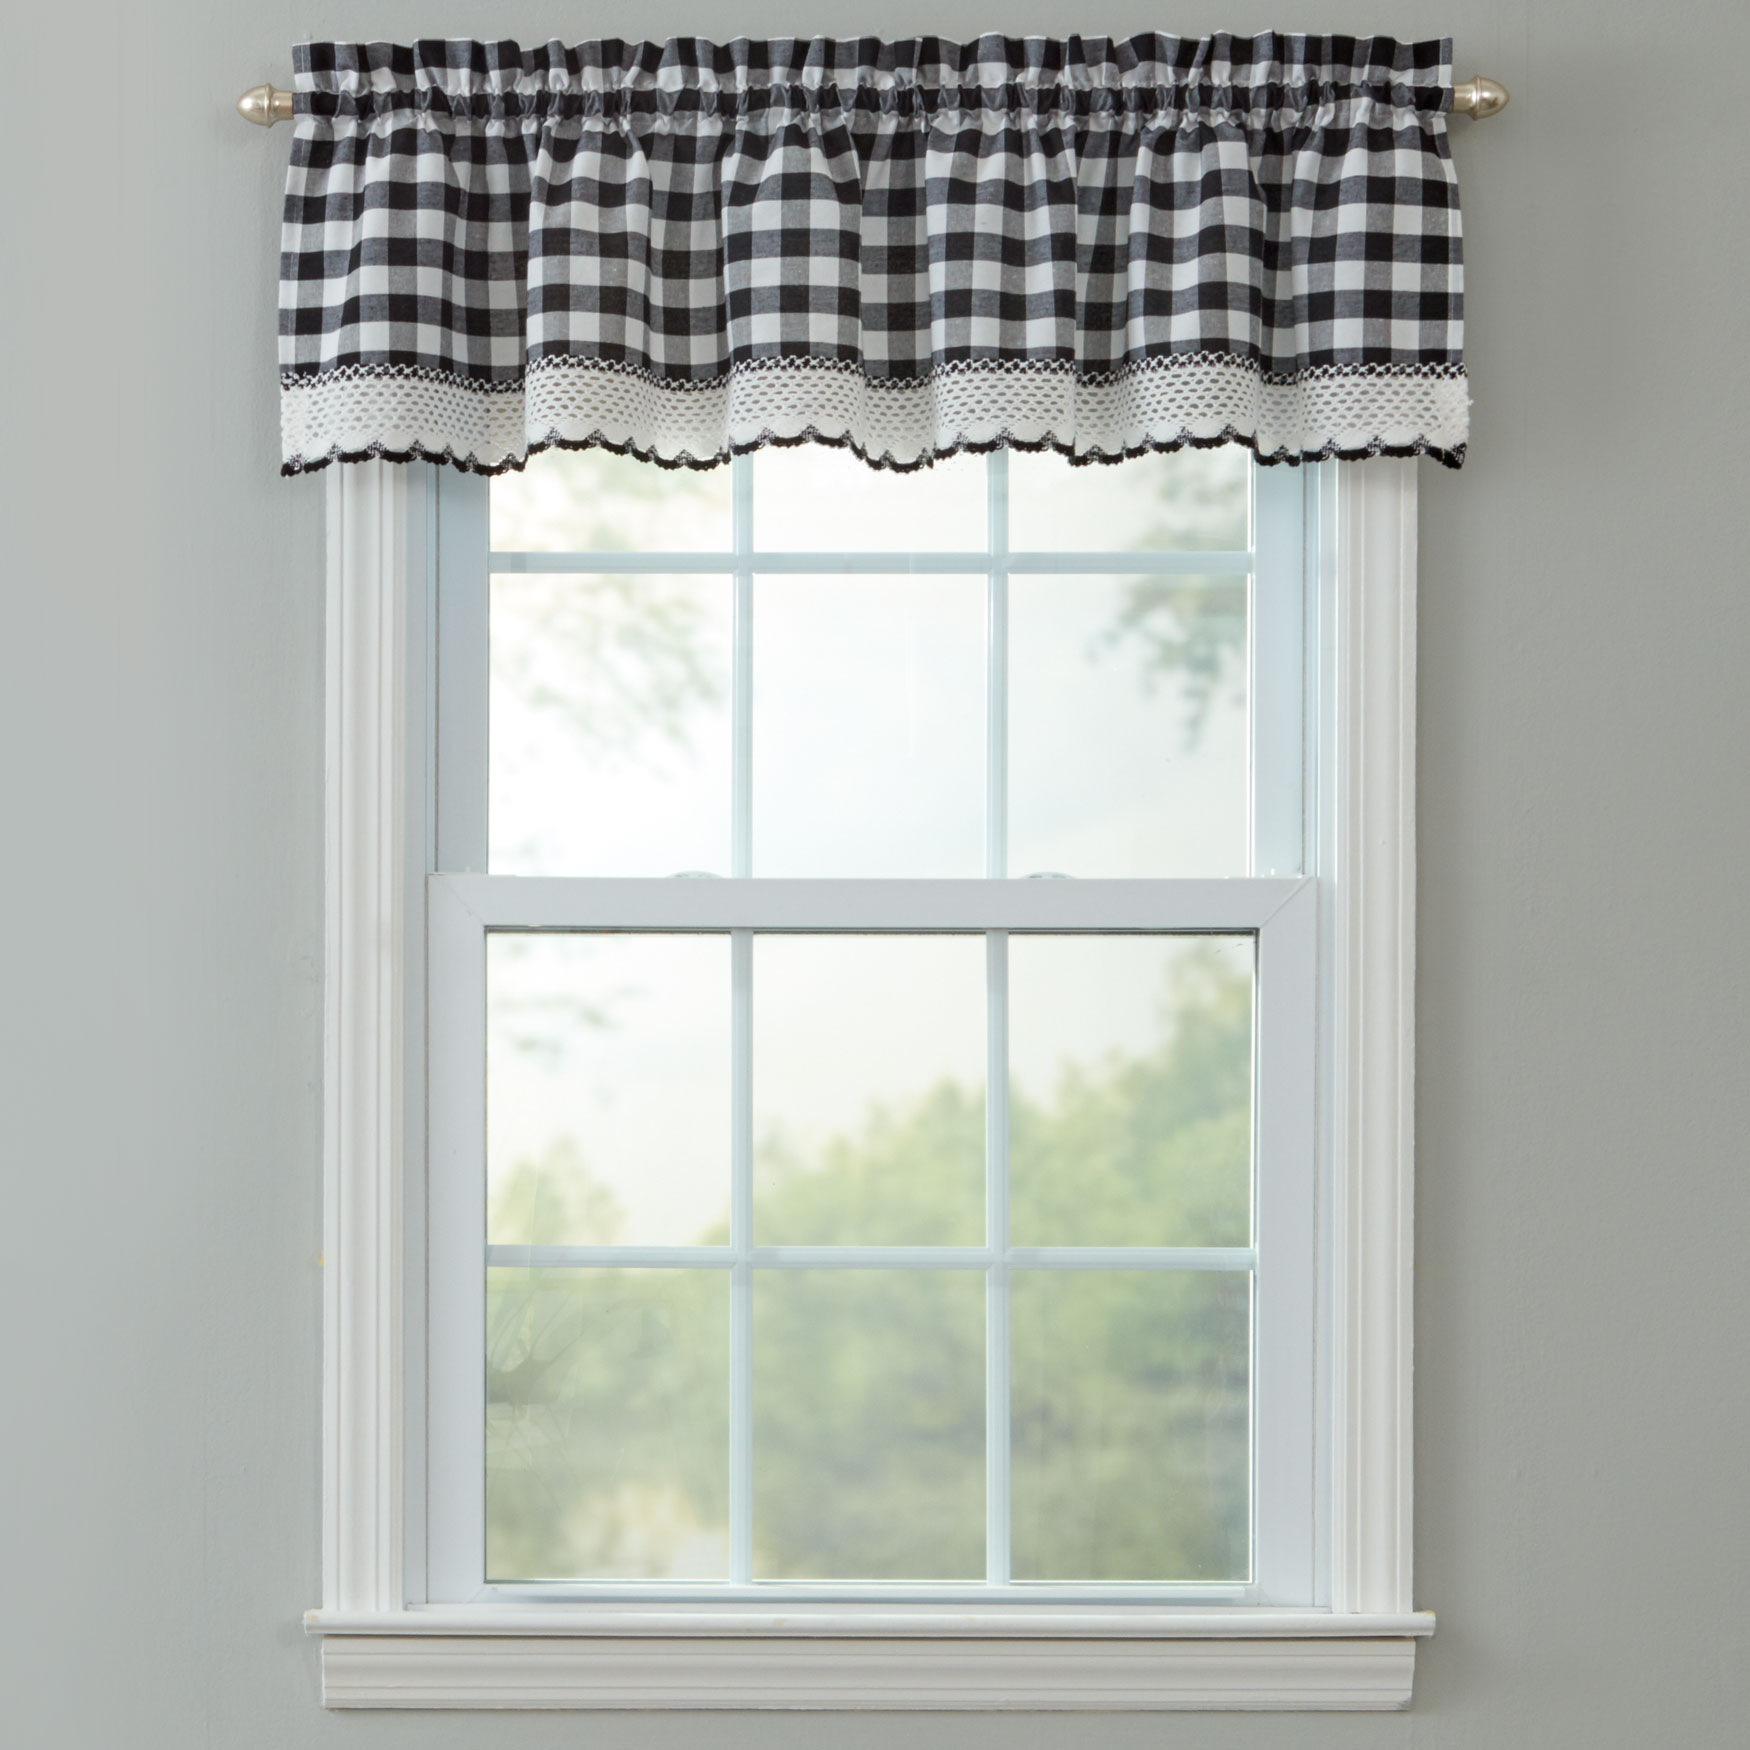 Buffalo Plaid Valance,